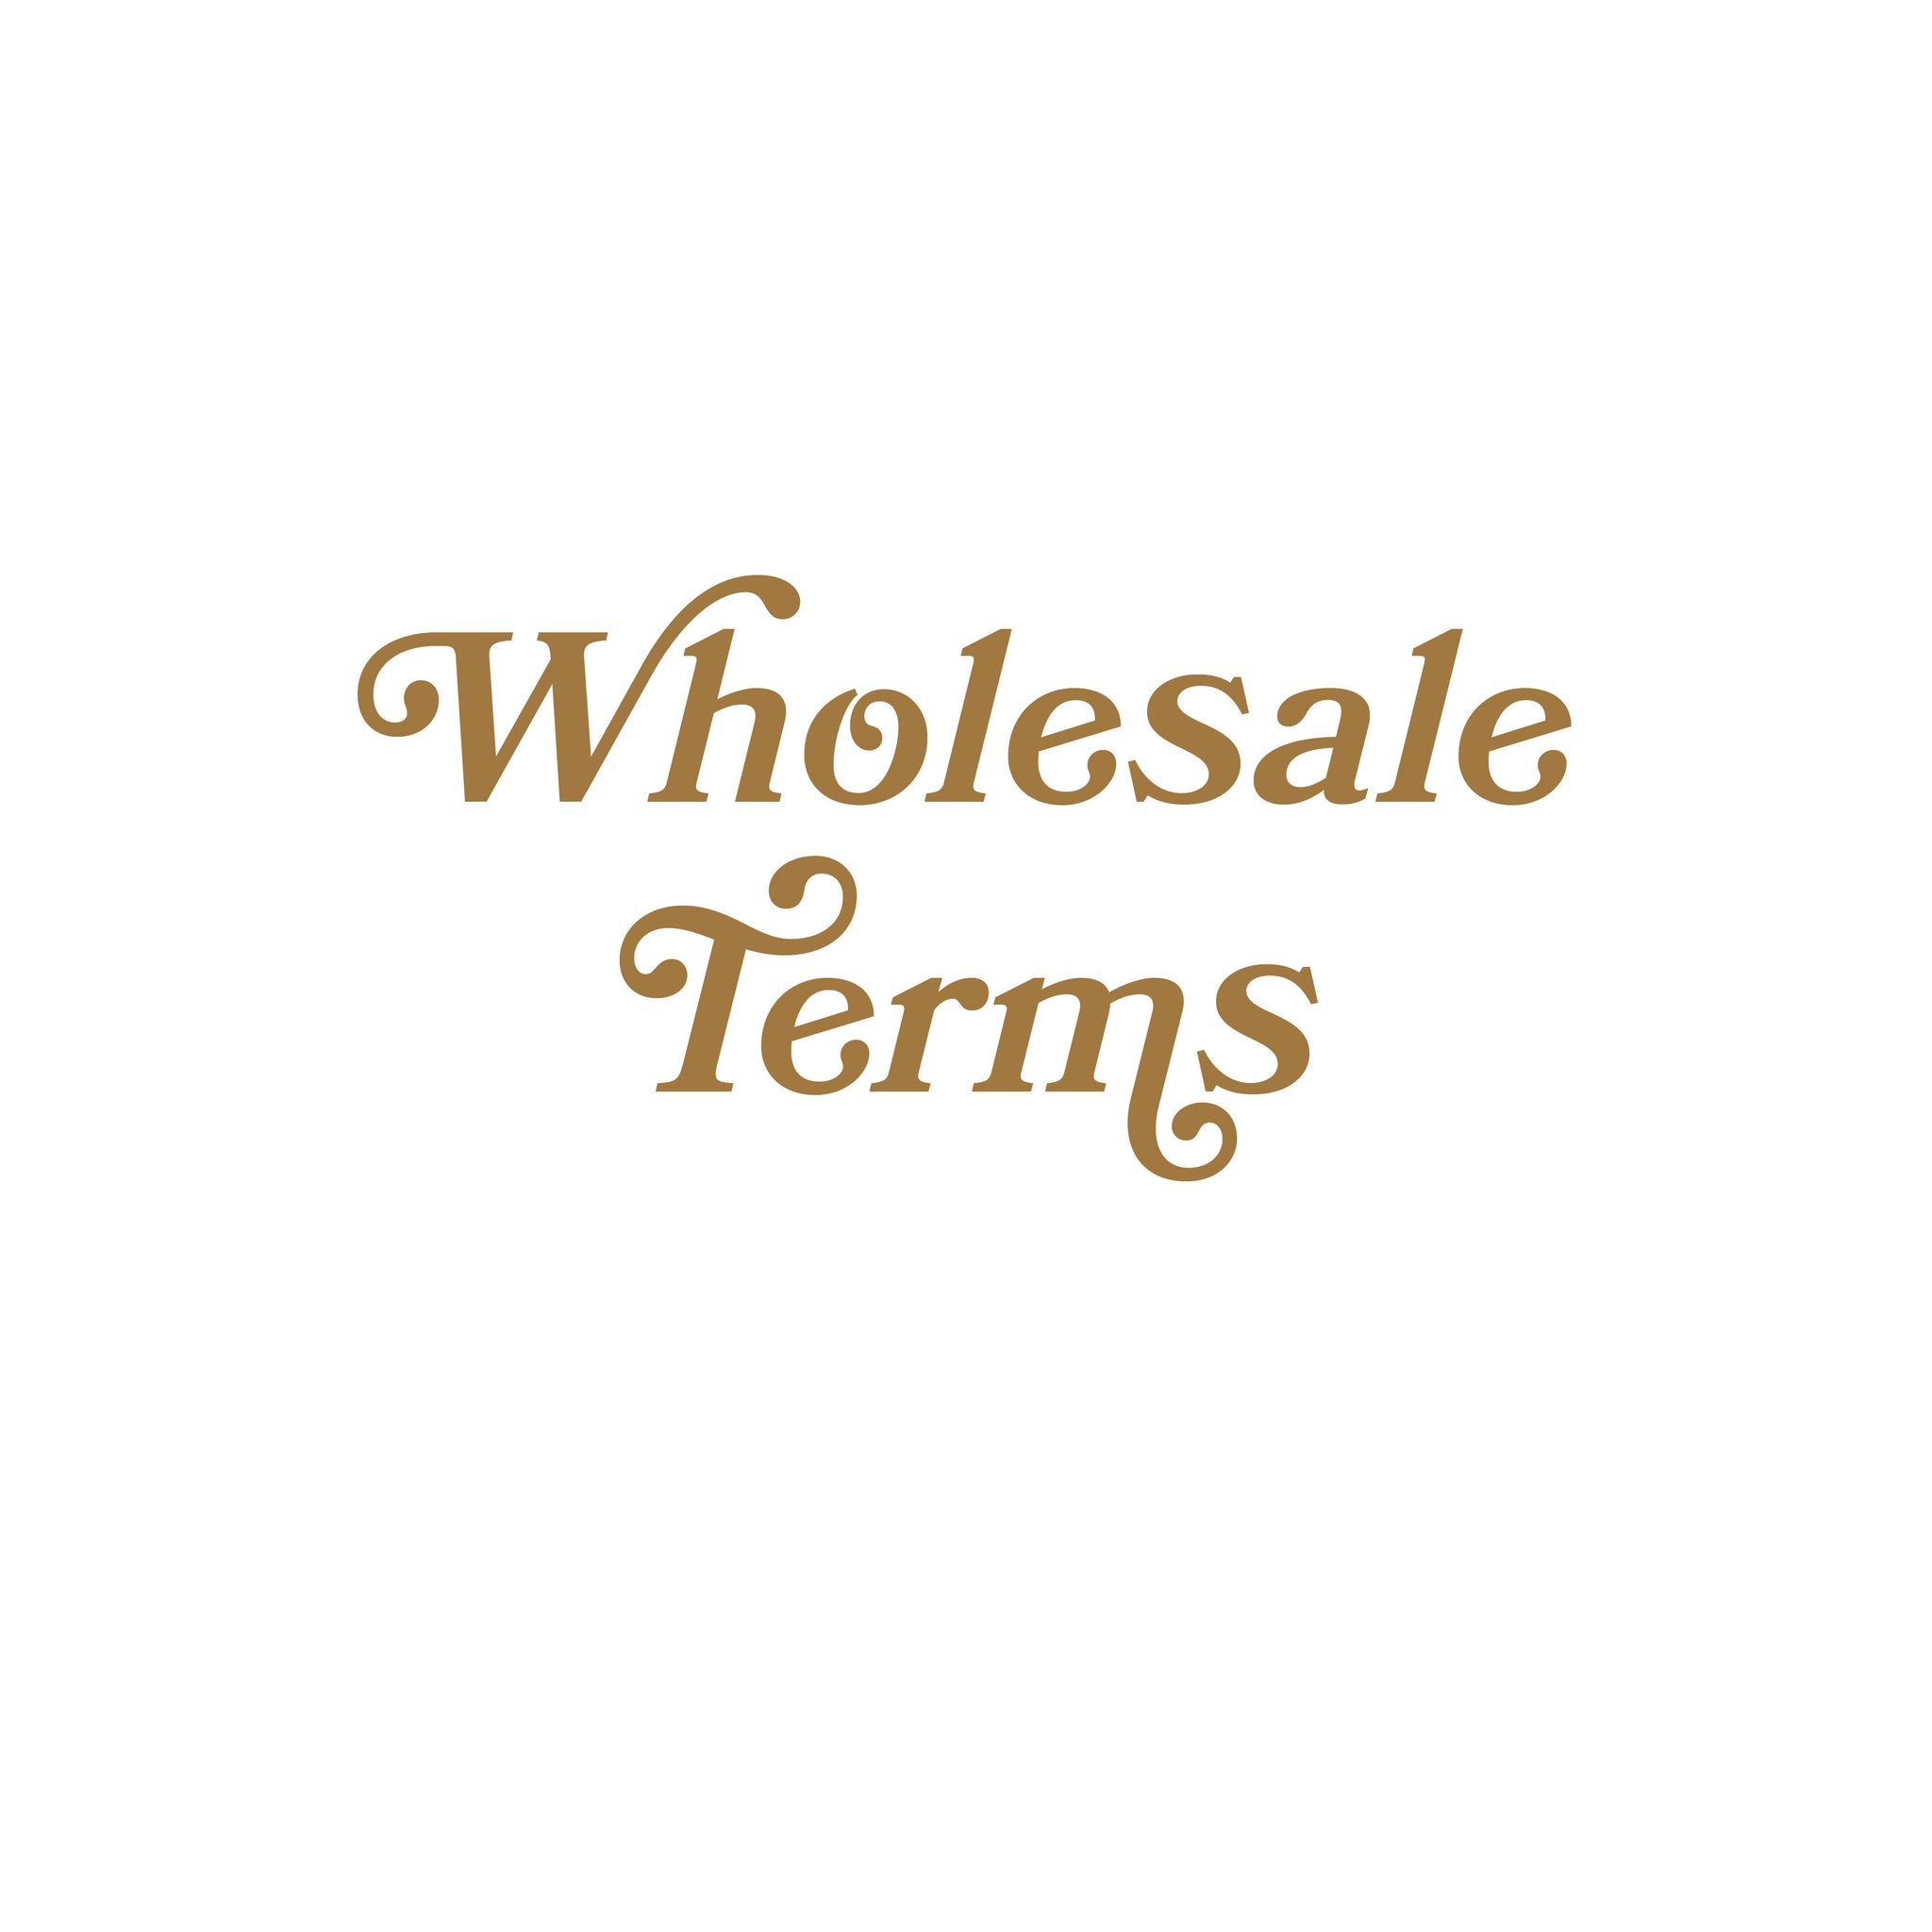 Terms {wholesale}